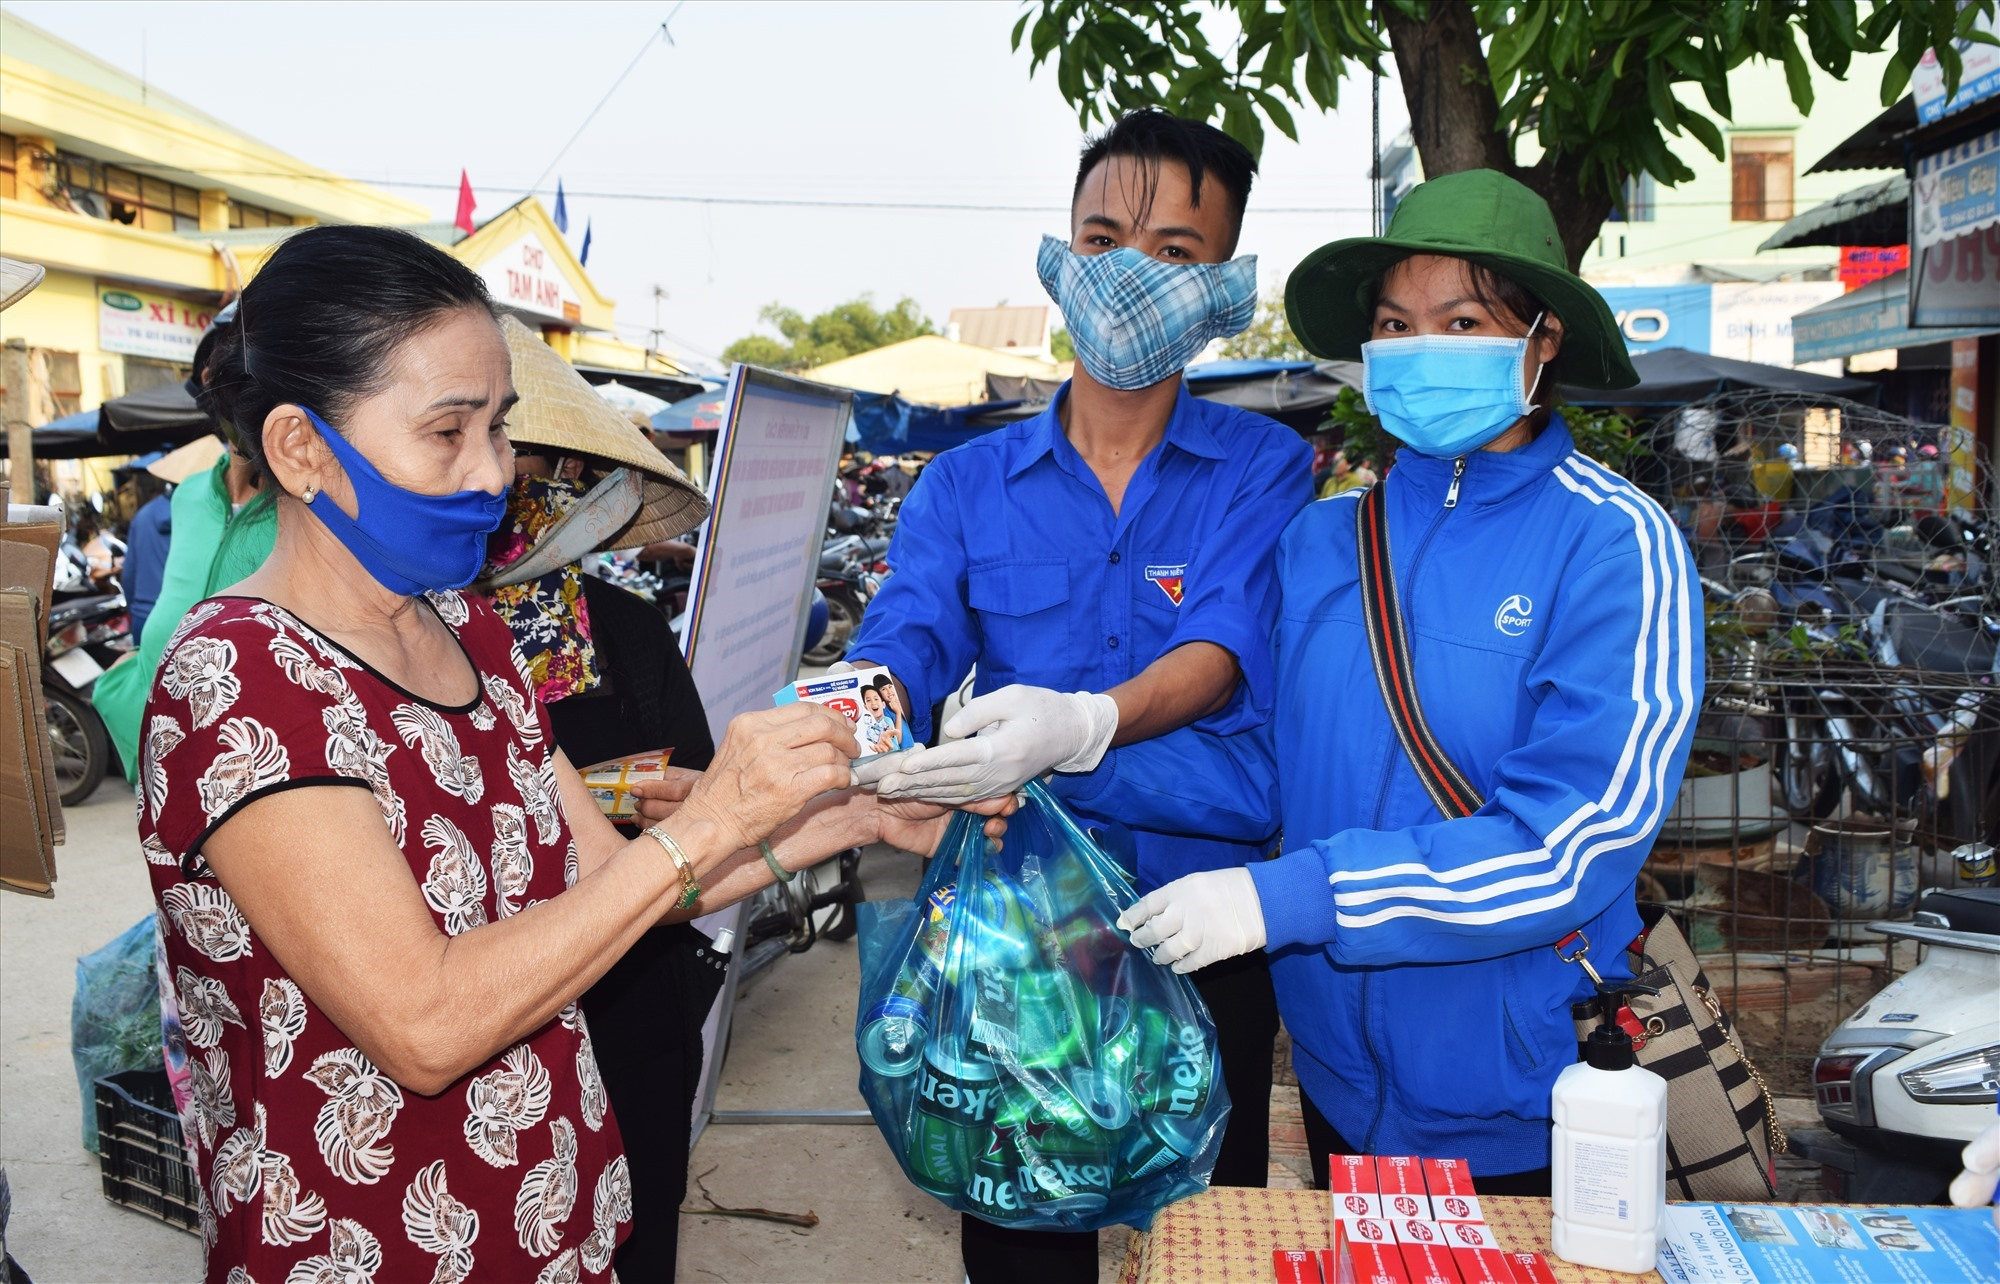 At a market in Nui Thanh distict